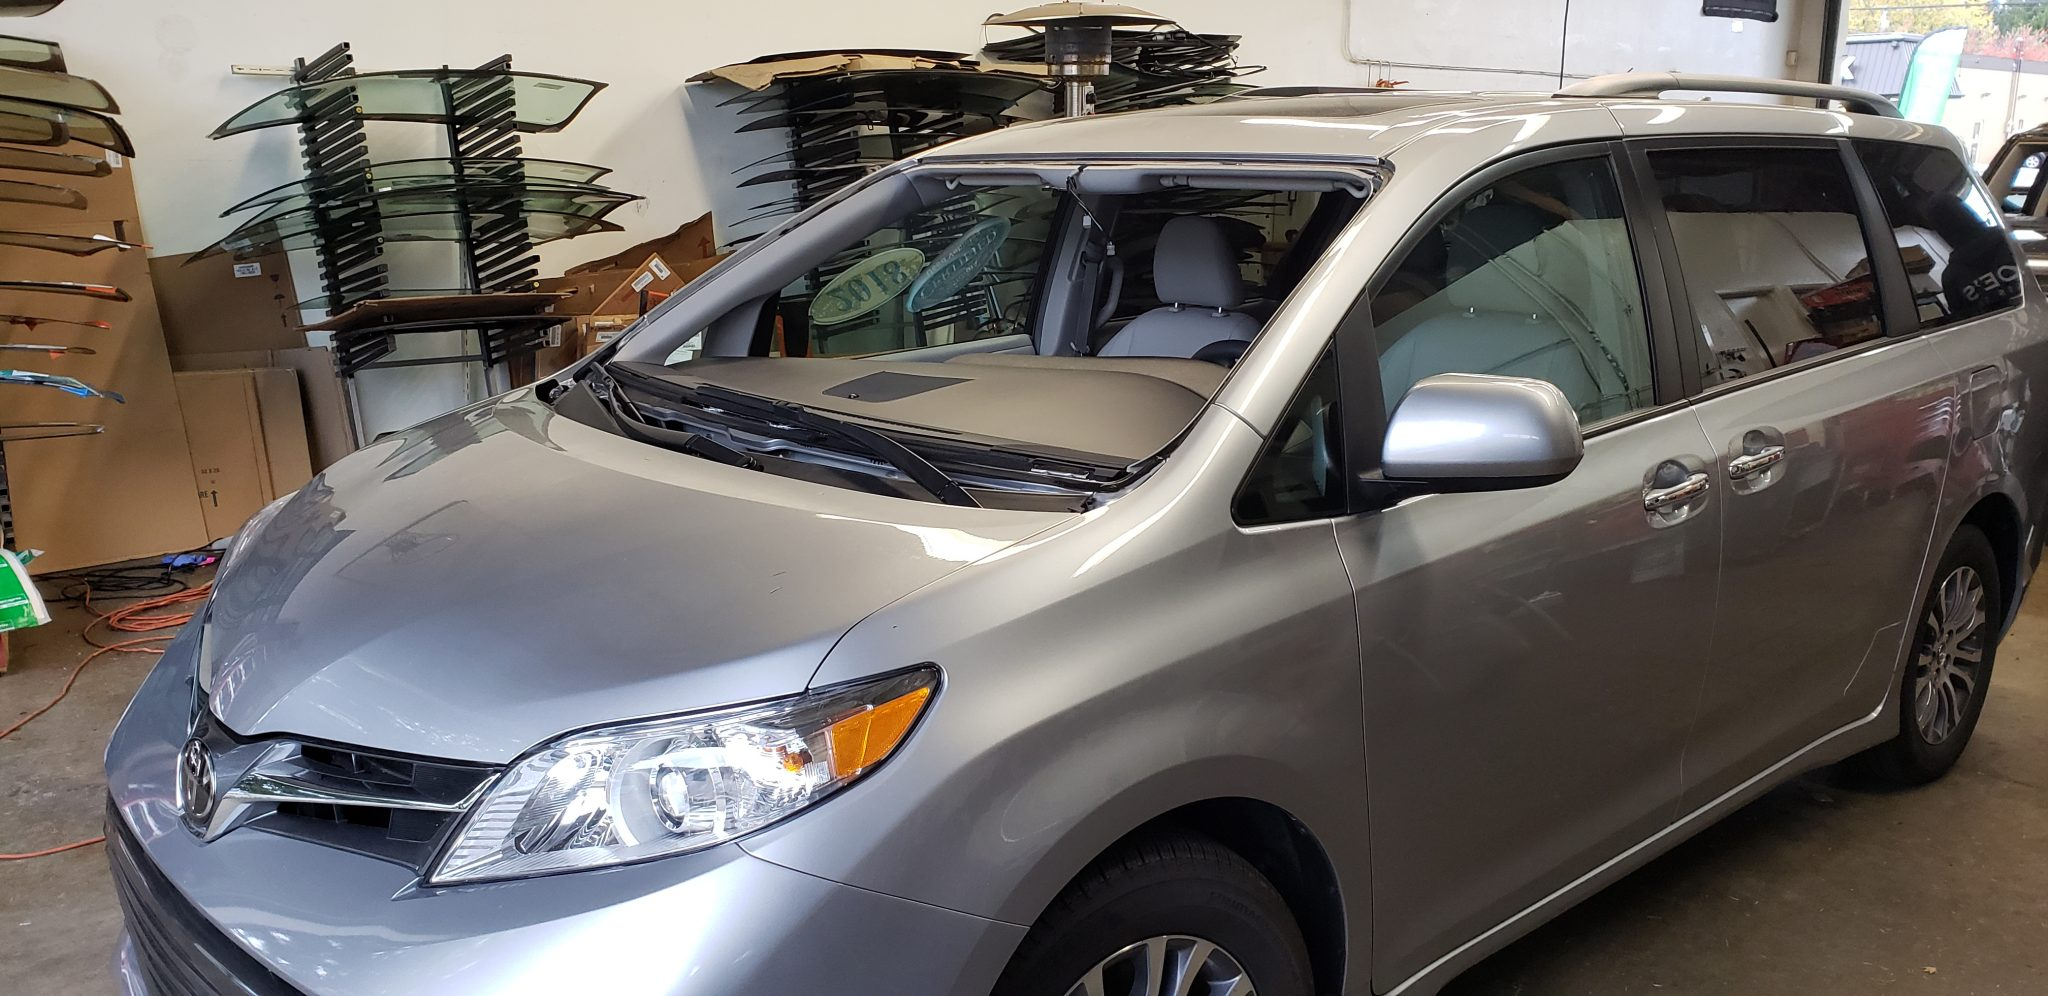 Expert Auto Door Glass Replacement in Everett Is Worth Every Penny